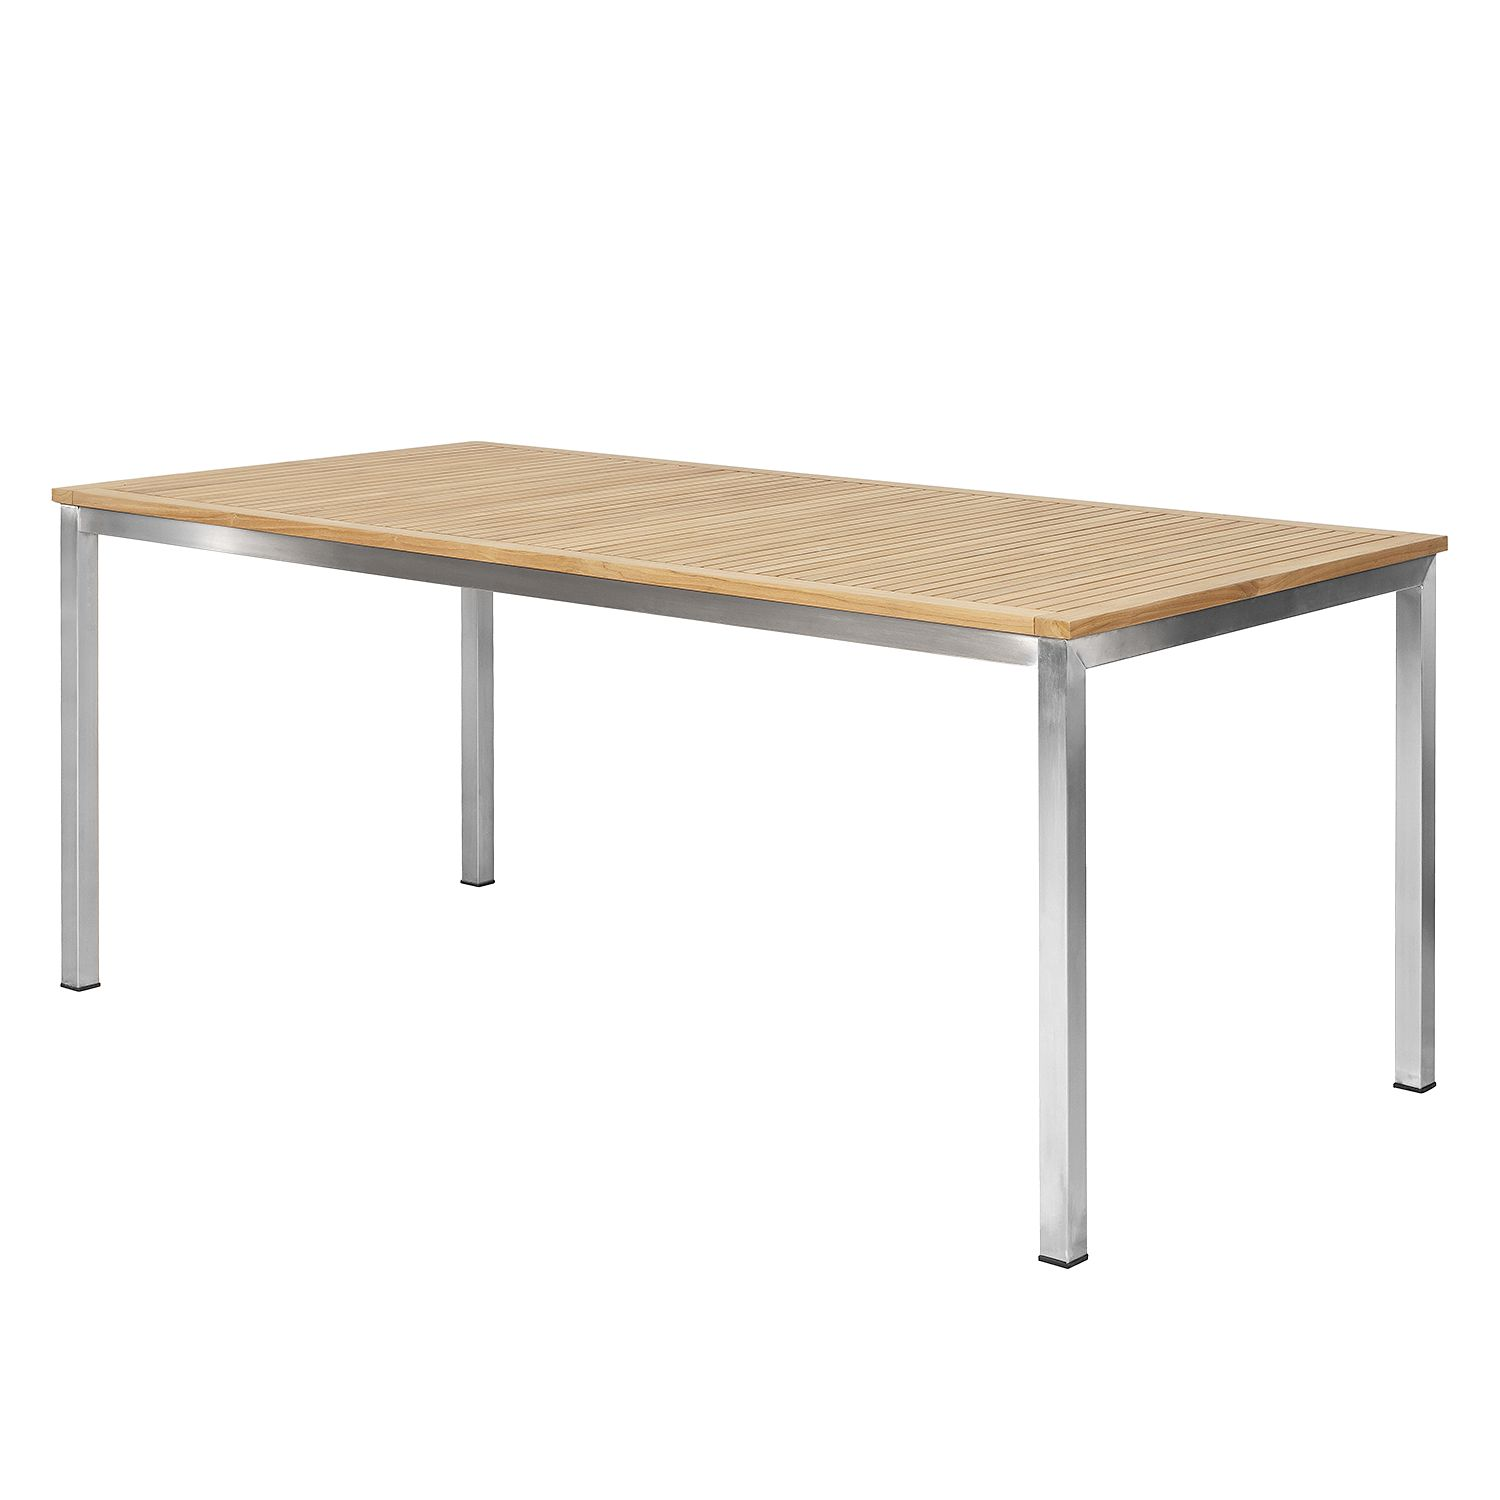 Table de jardin Teakline Exclusif I